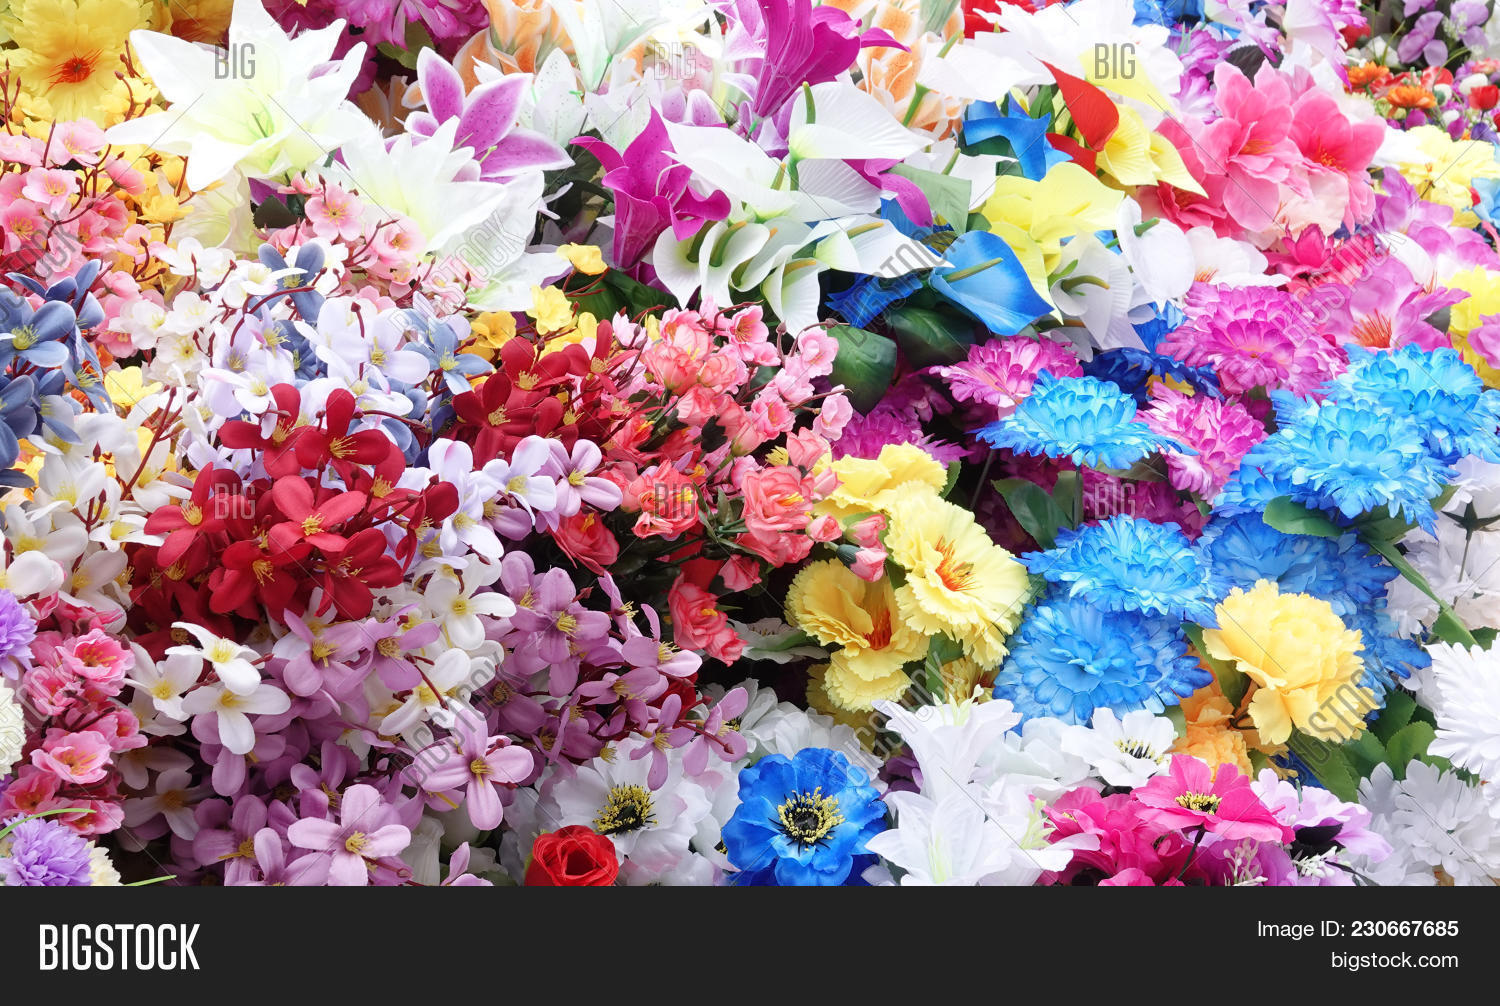 Artificial Flowers Image Photo Free Trial Bigstock